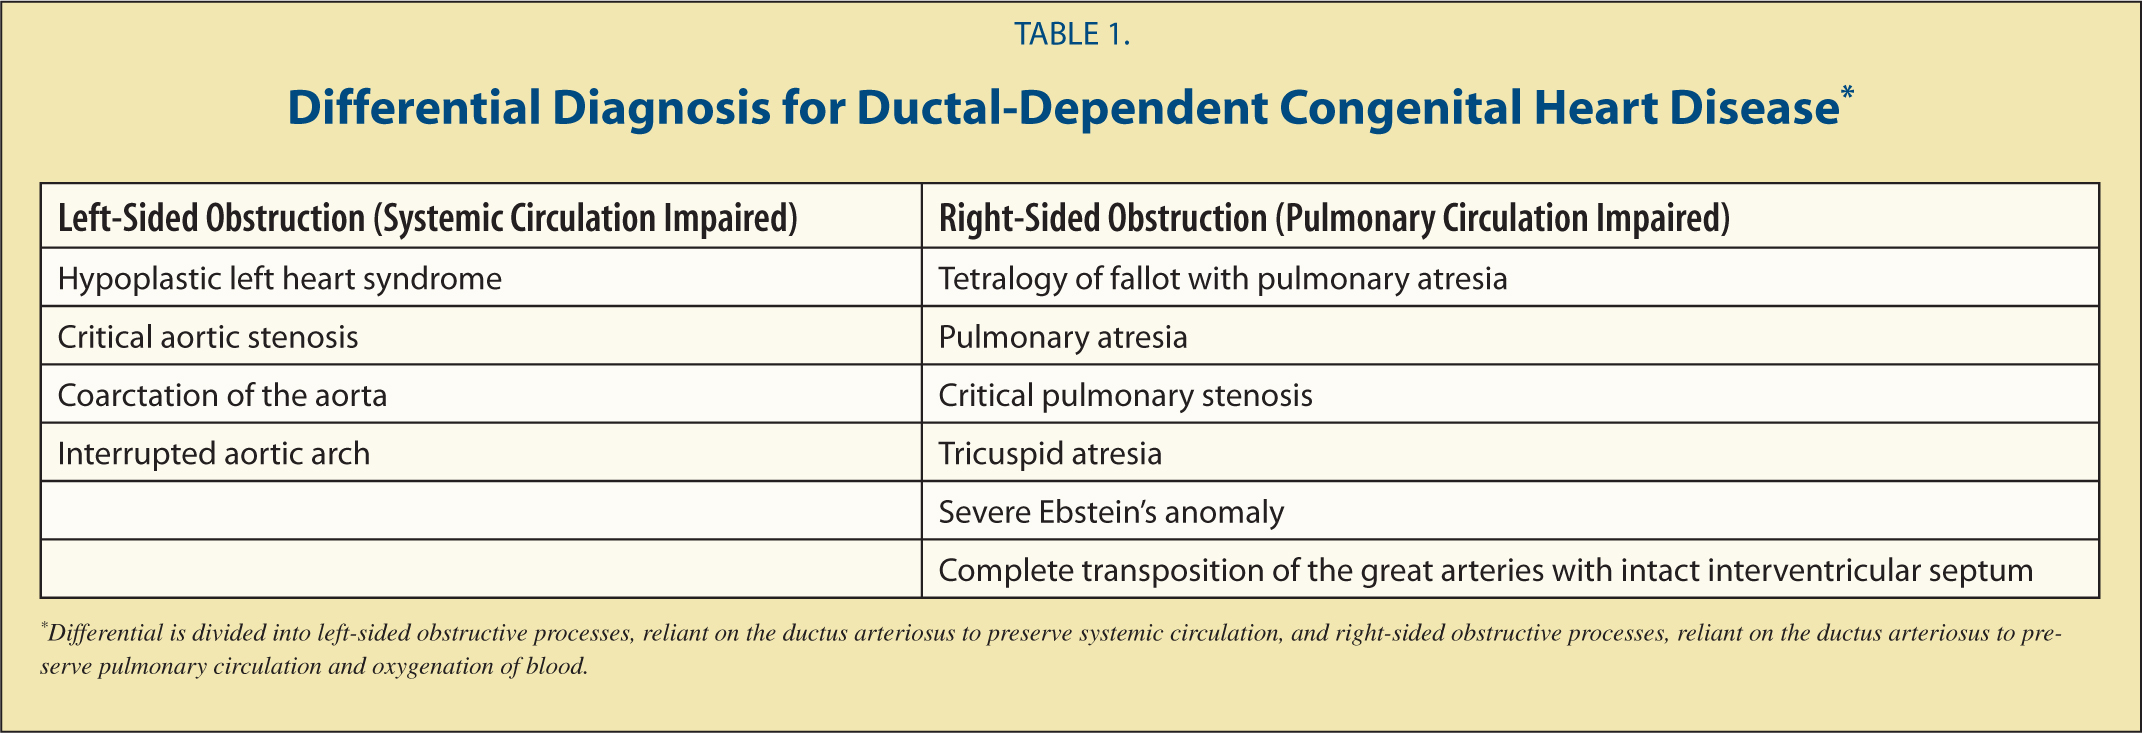 Differential Diagnosis for Ductal-Dependent Congenital Heart Disease*